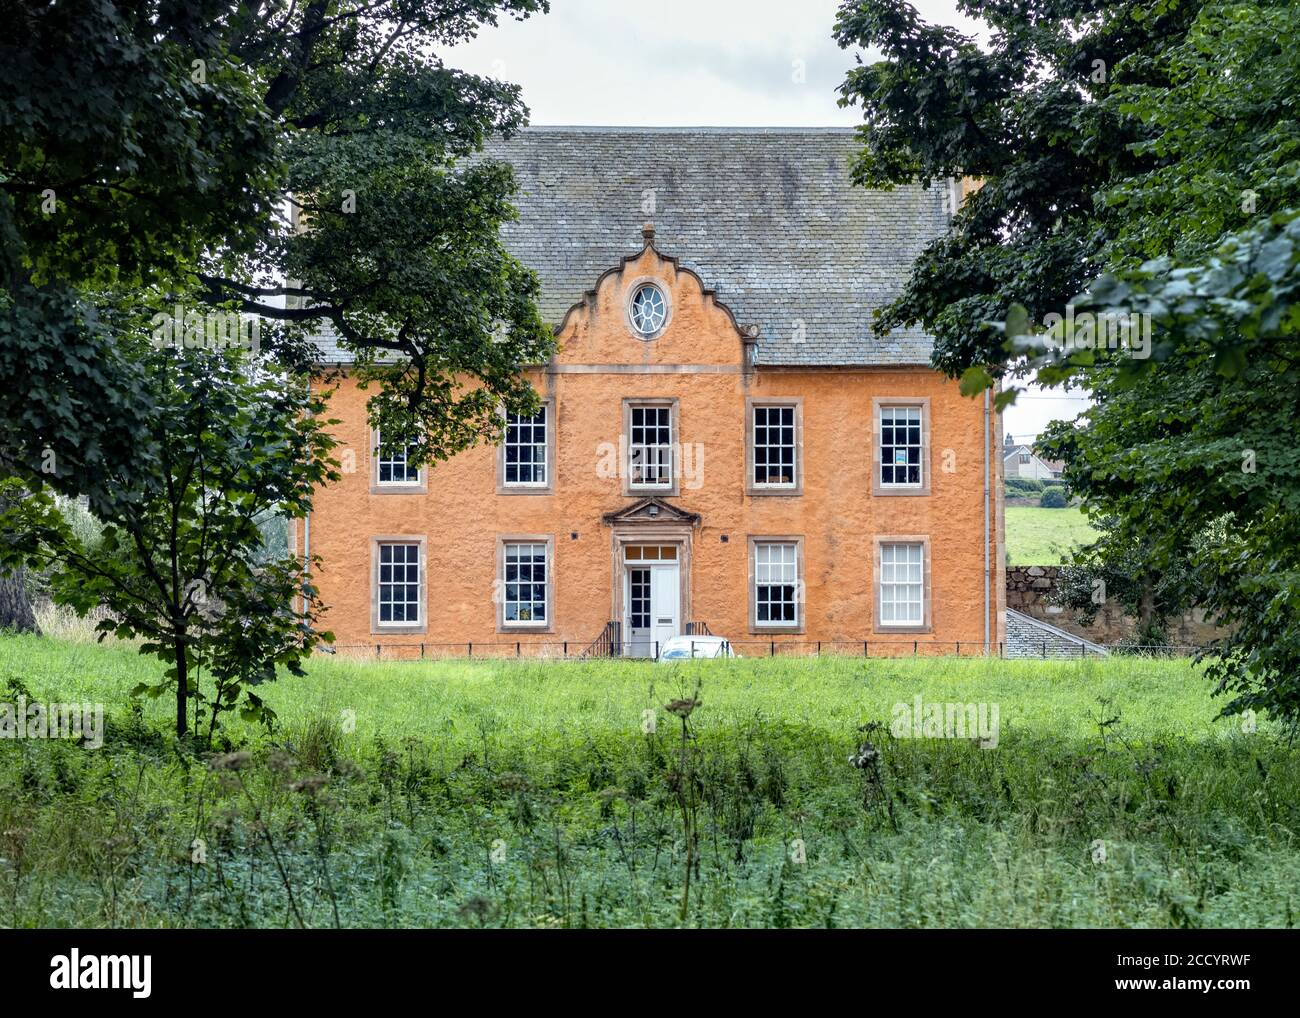 Bankton House, home of Colonel James Gardiner who died at the Battle of Prestonpans, East Lothian, Scotland, UK. Stock Photo